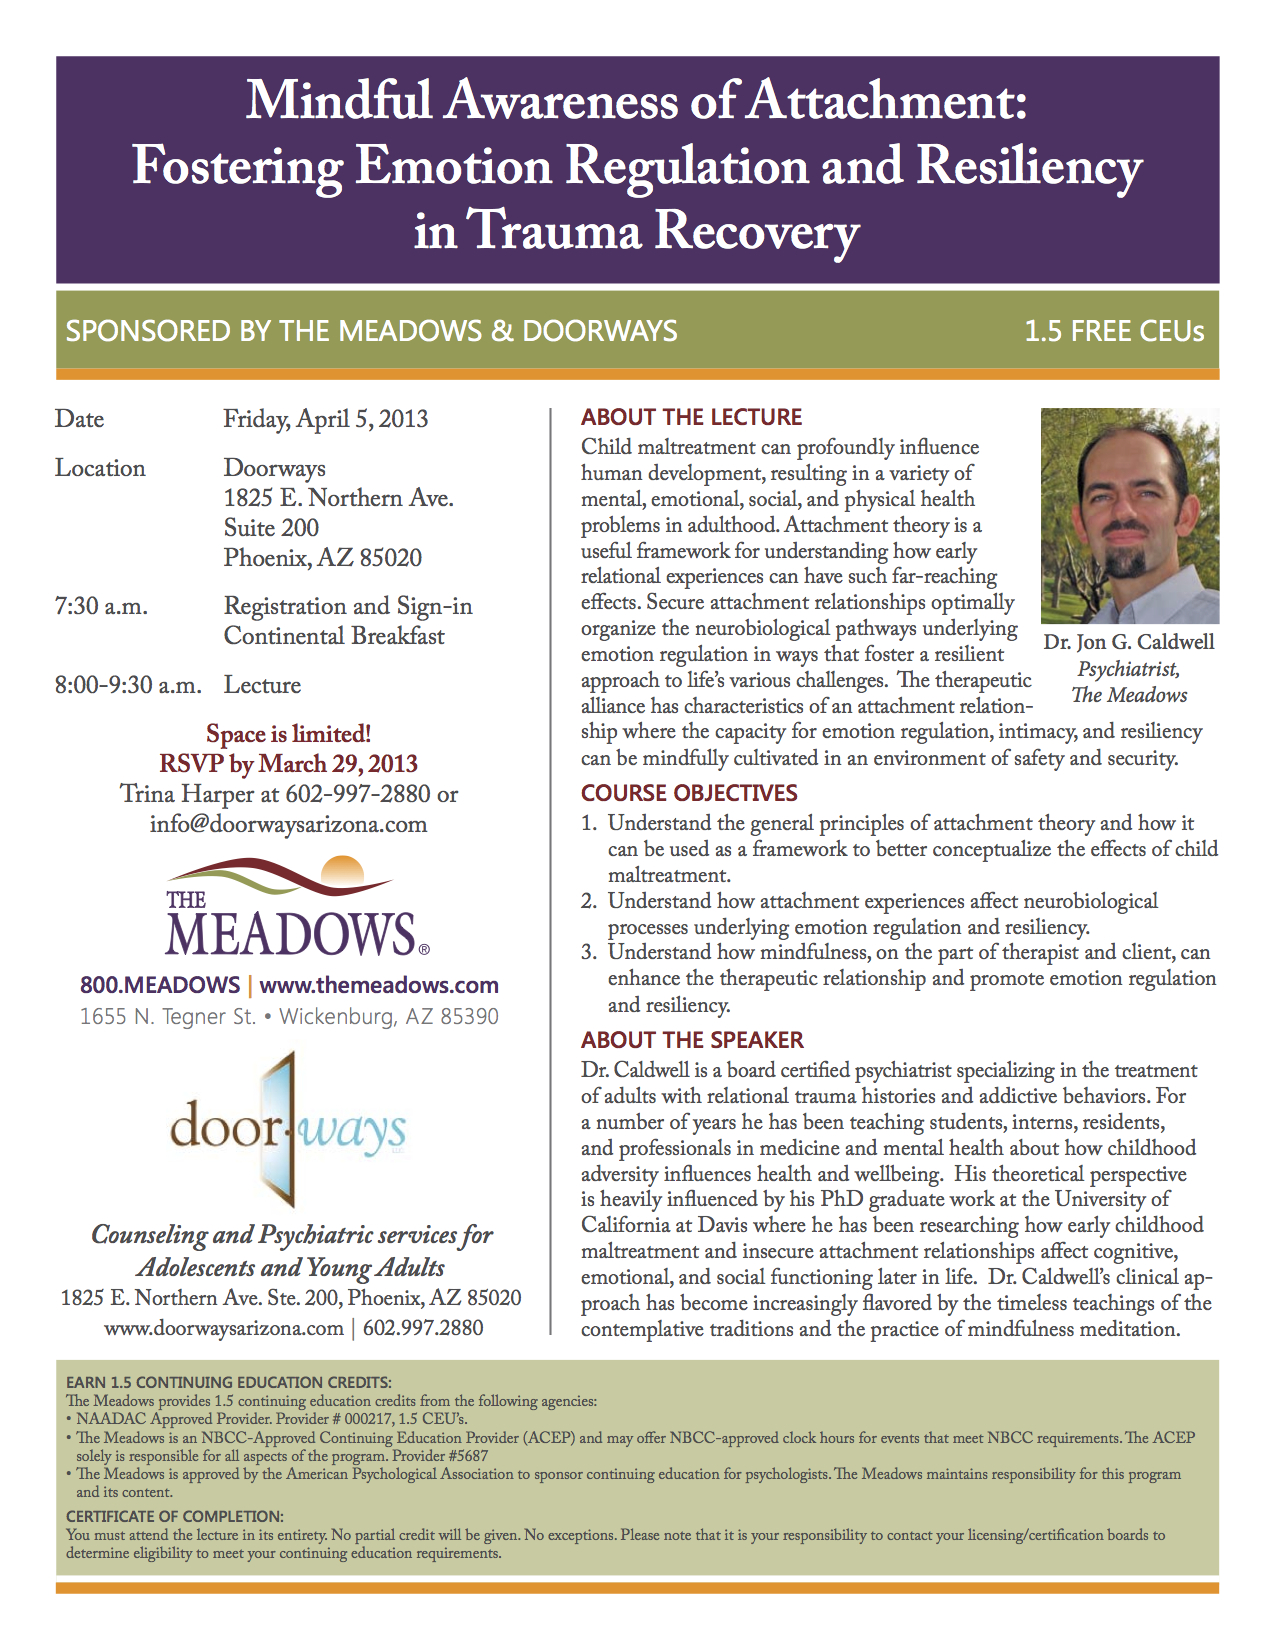 Meadows and Doorways April5-2013 CE Presentation Dr Caldwell